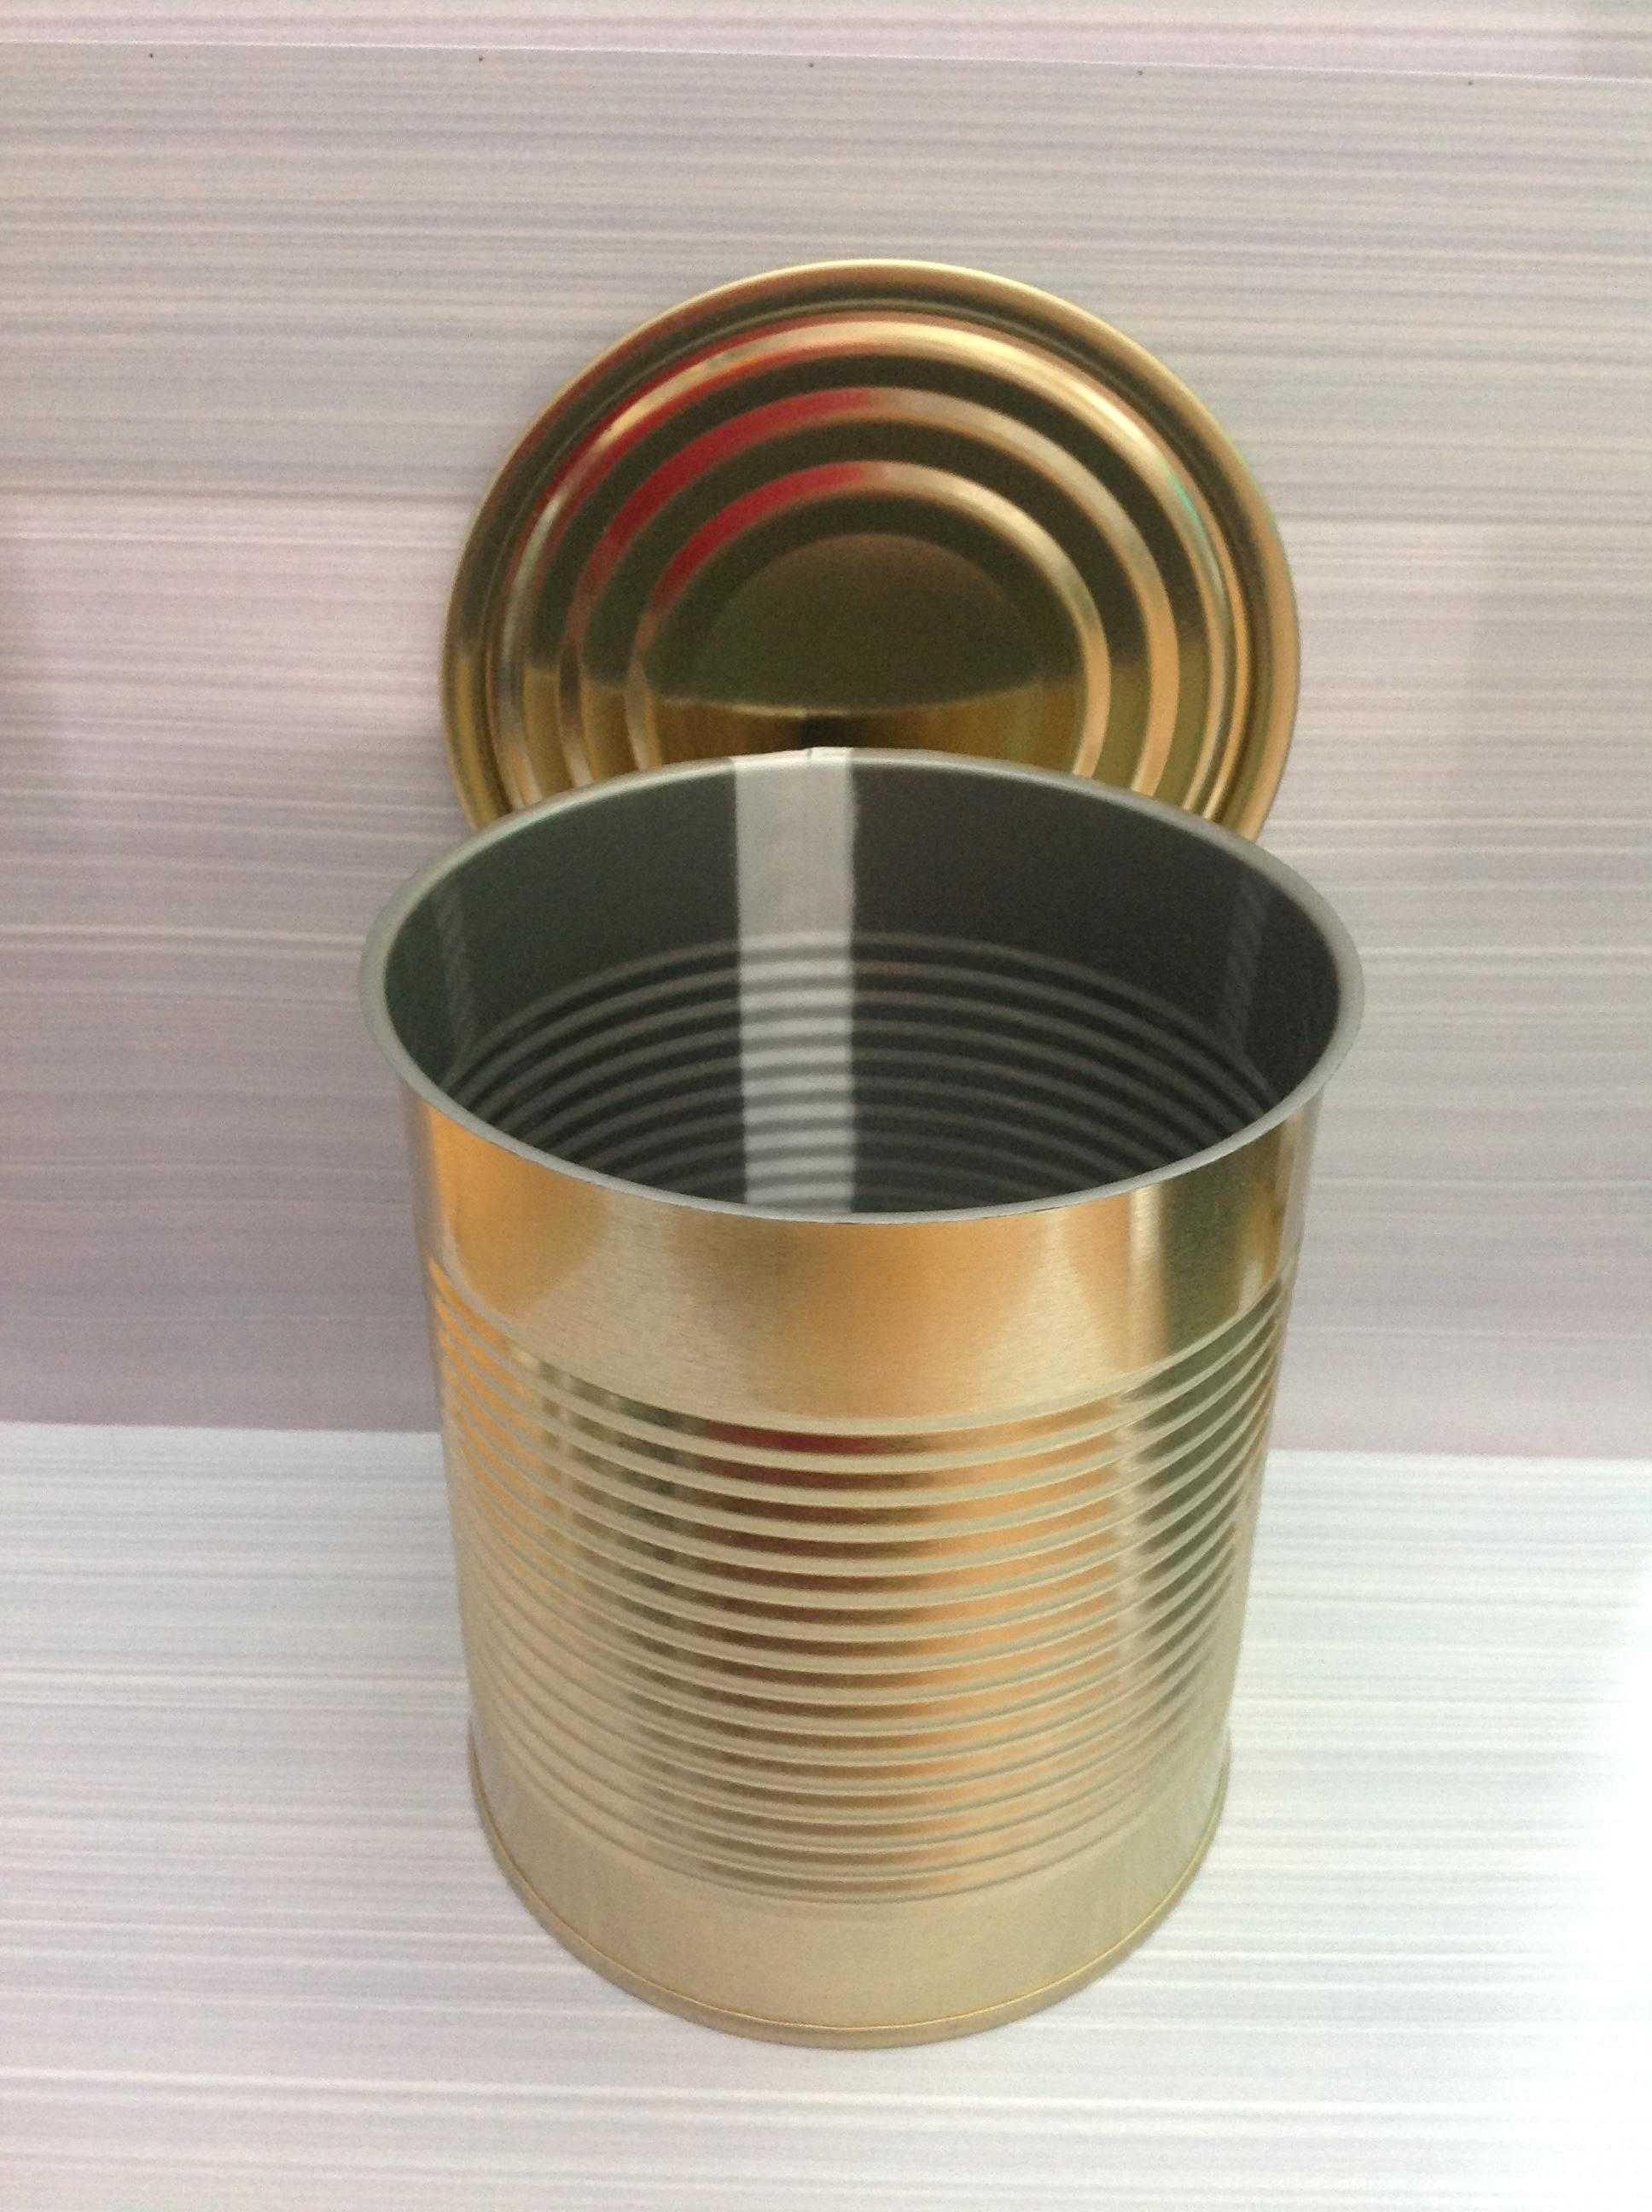 10 In A Box No13. Tin Can with Ring-pull Lid diameter 99mm x 119mm high with bead lines.